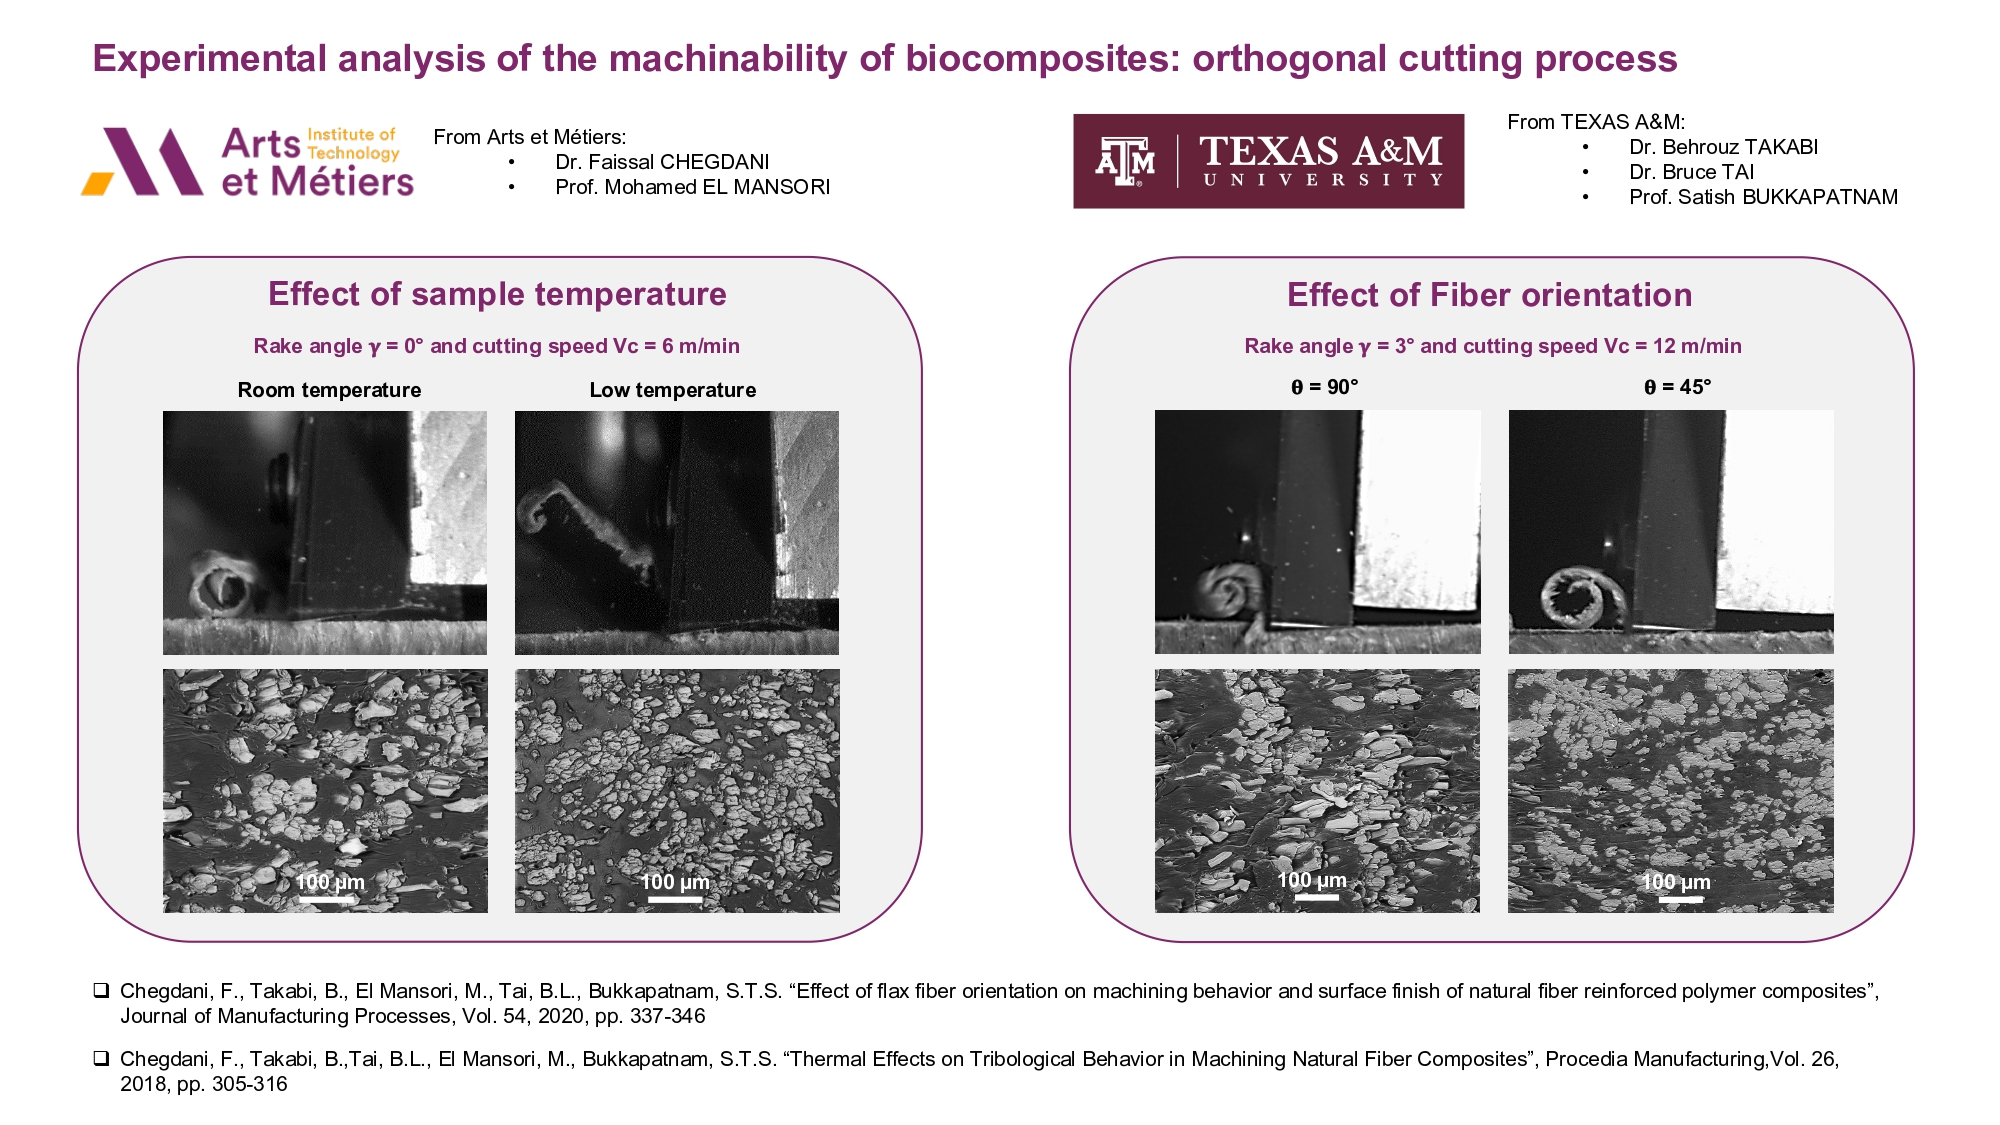 Experimental analysis of the machinability of biocomposites : orthogonal cutting process | Events AM2